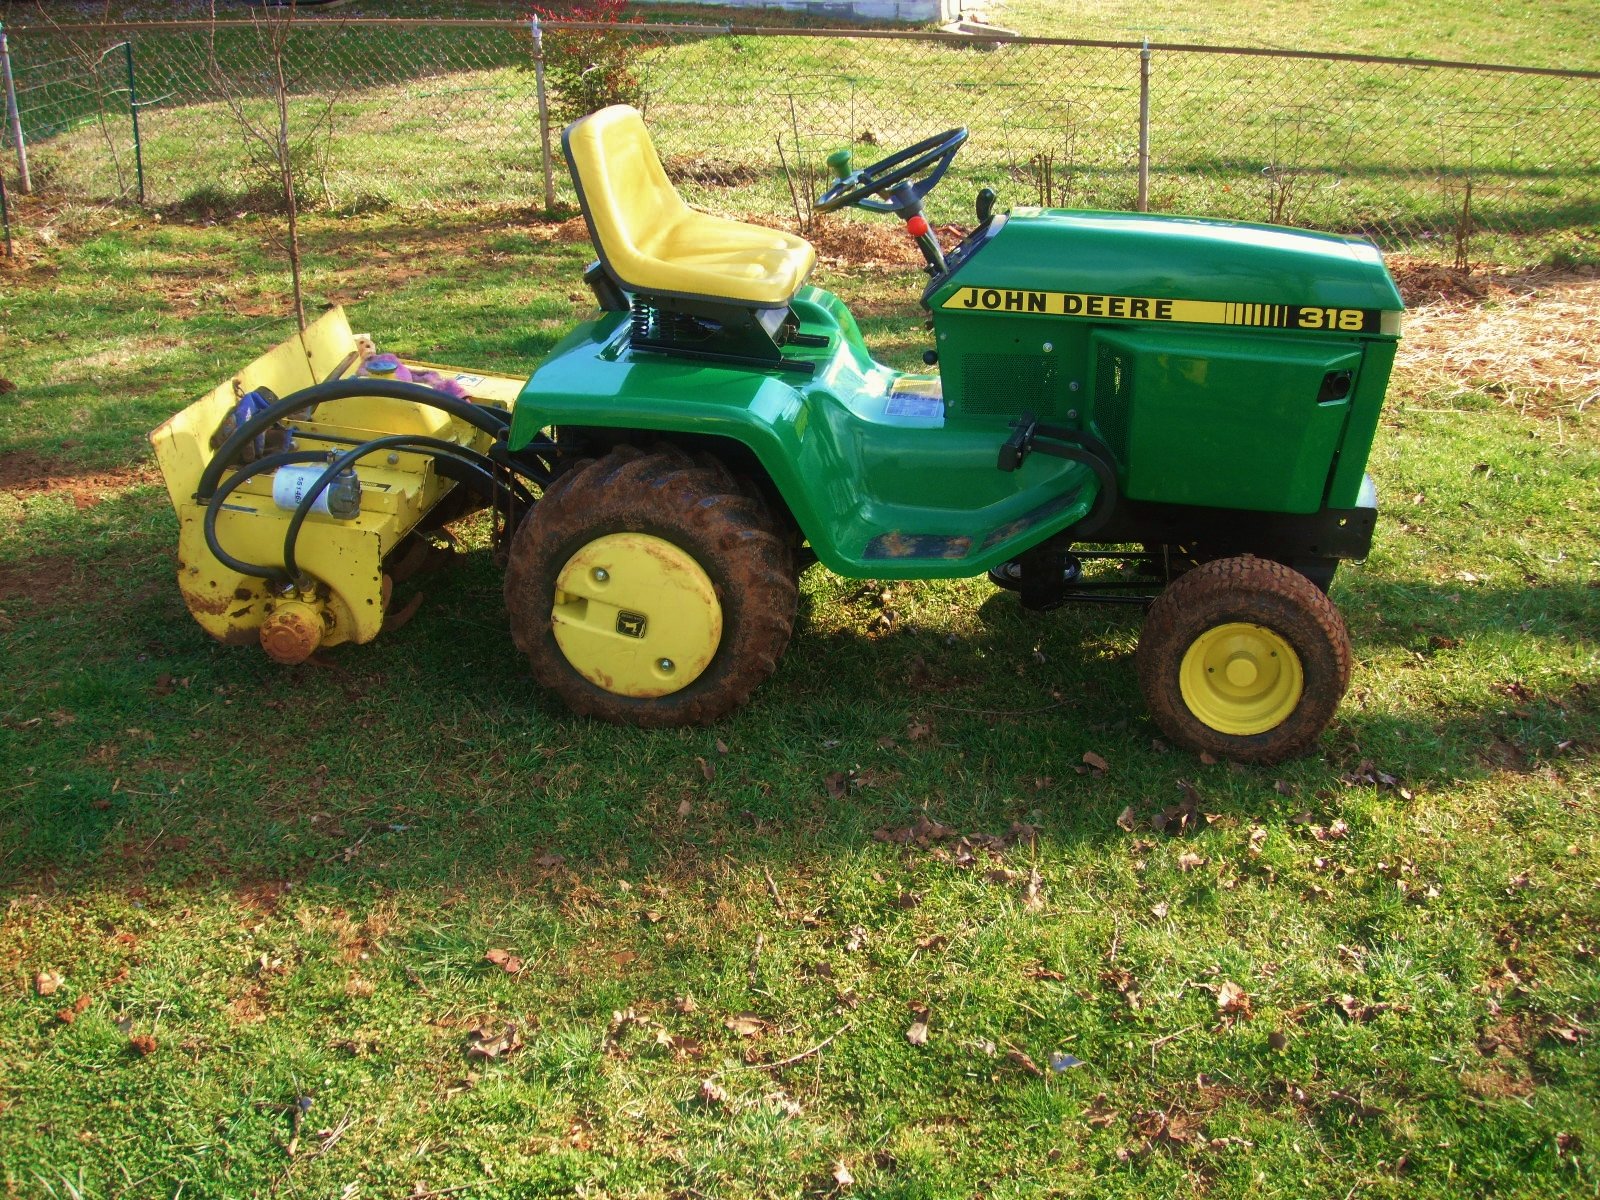 Rare/Cool JD attachment thread - MyTractorForum.com - The ...